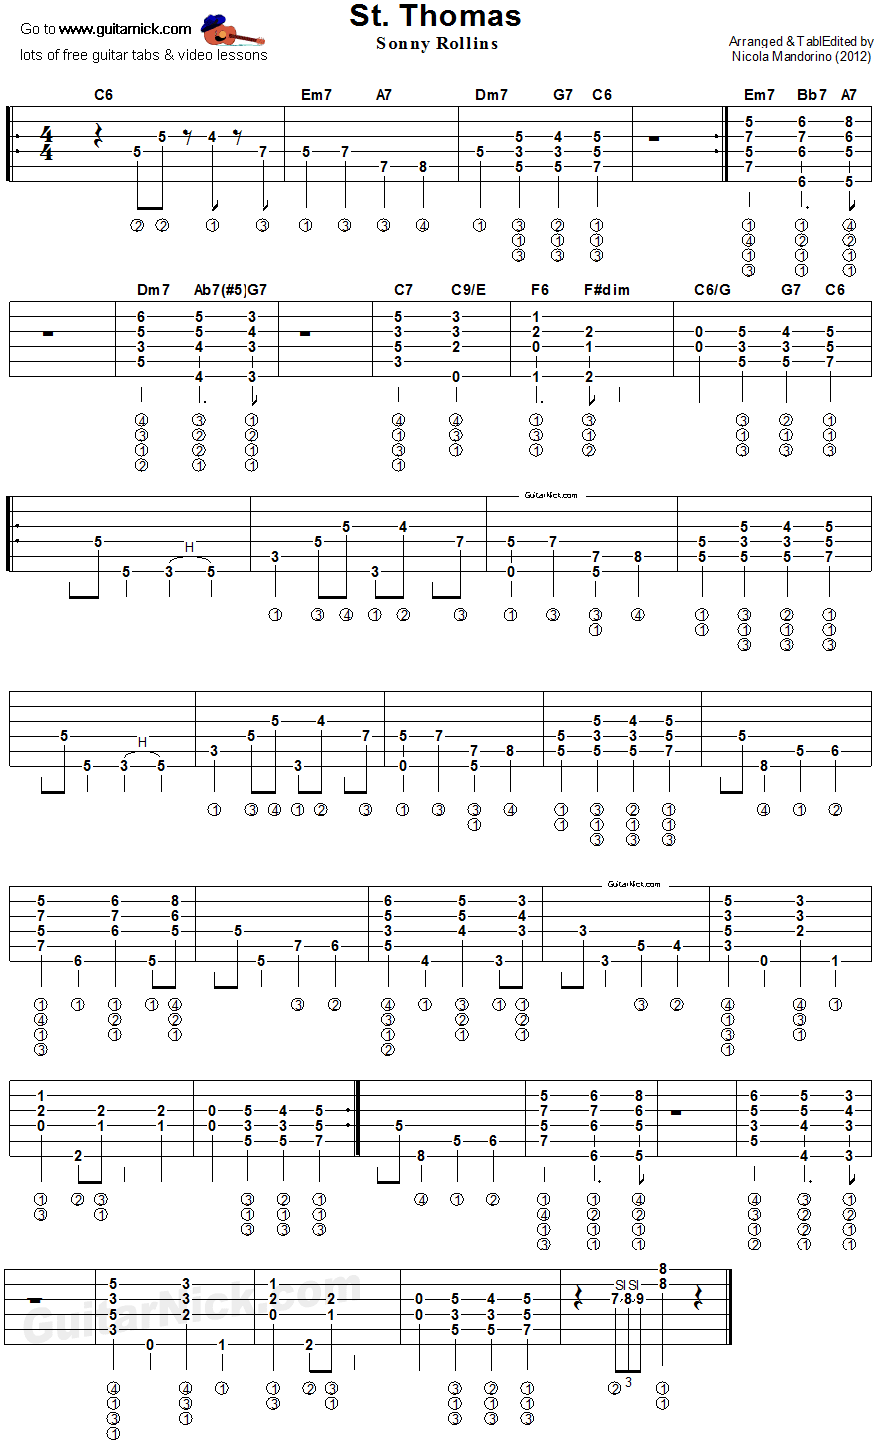 St. Thomas - fingerstyle guitar tab